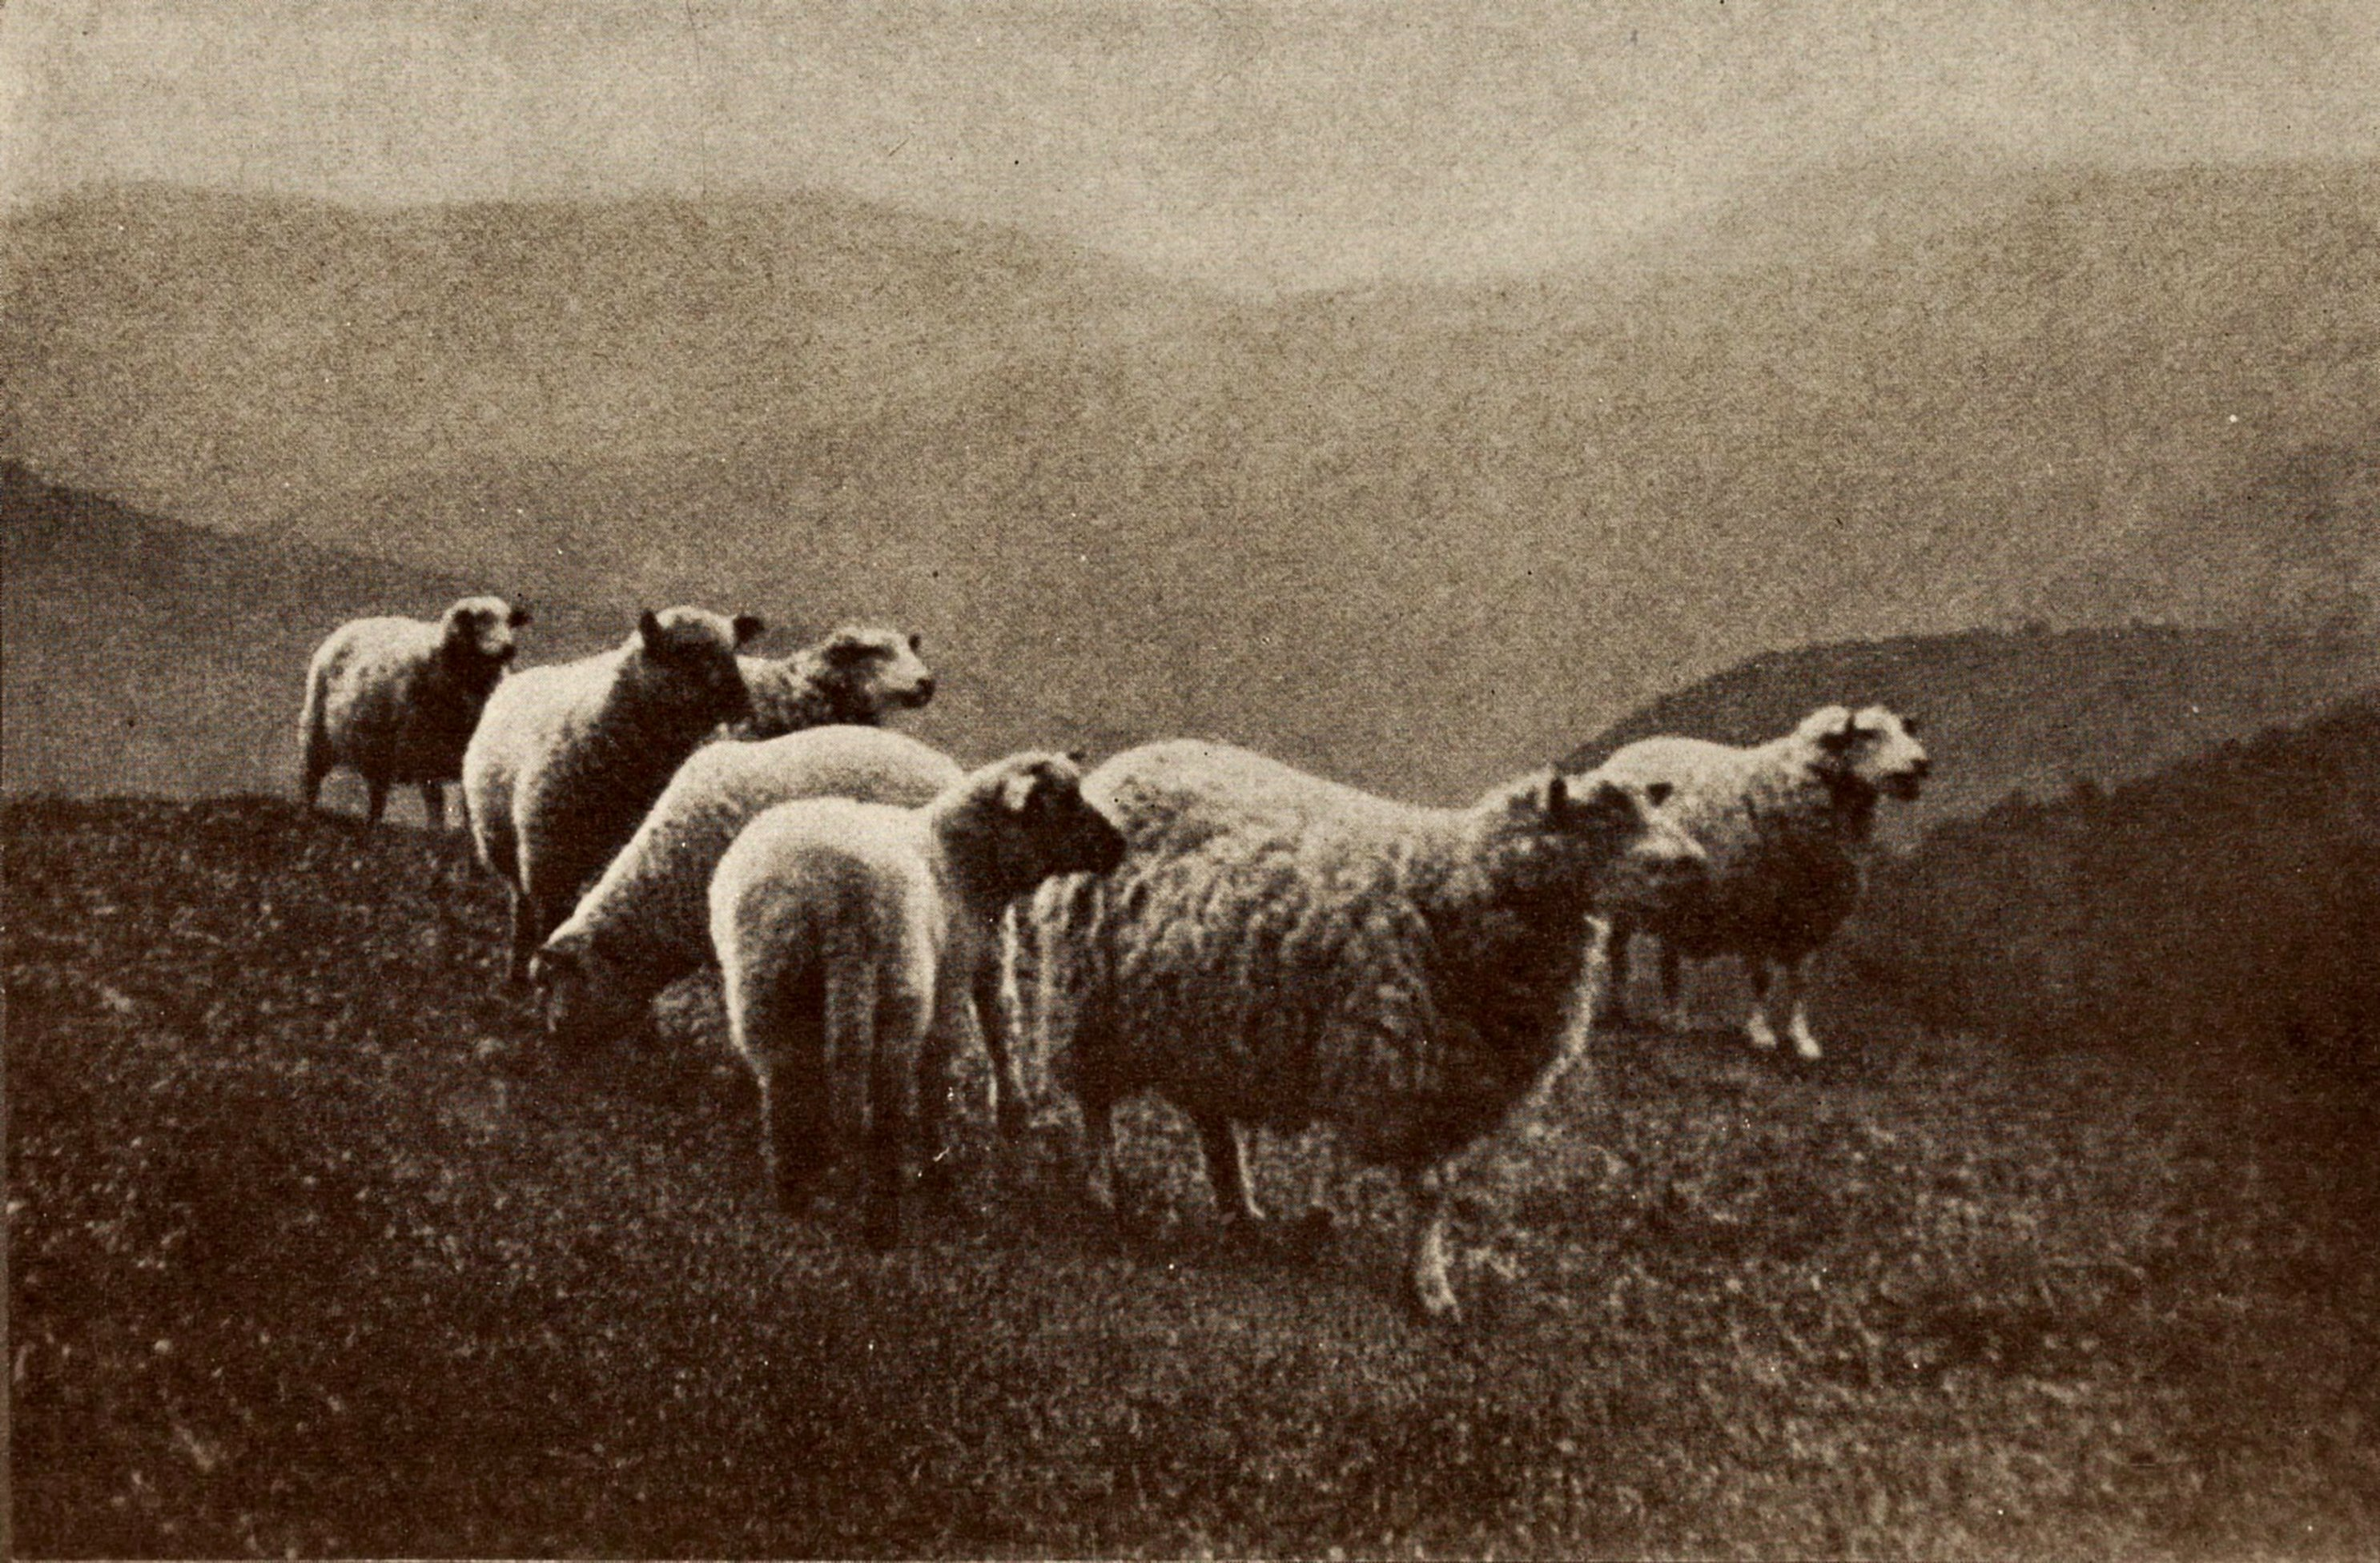 Sheep in the Berkshires by C. R. Phipps about 1923